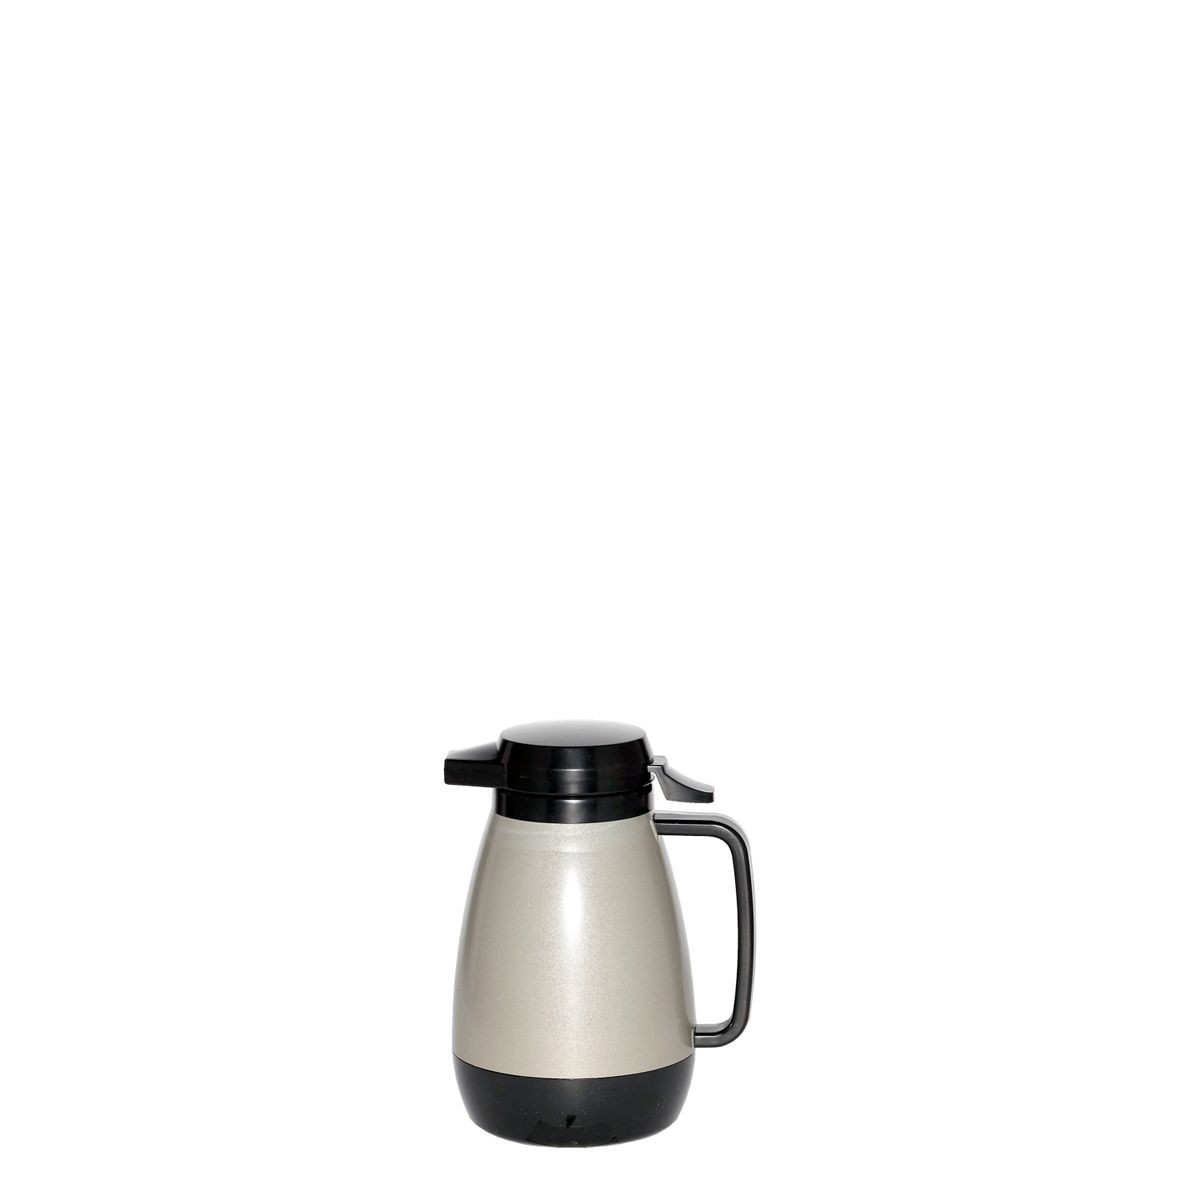 Service Ideas PB501MG Thermo-Serv Metallic Grey Push Button Coffee Server, .6 Liter (20 oz.)